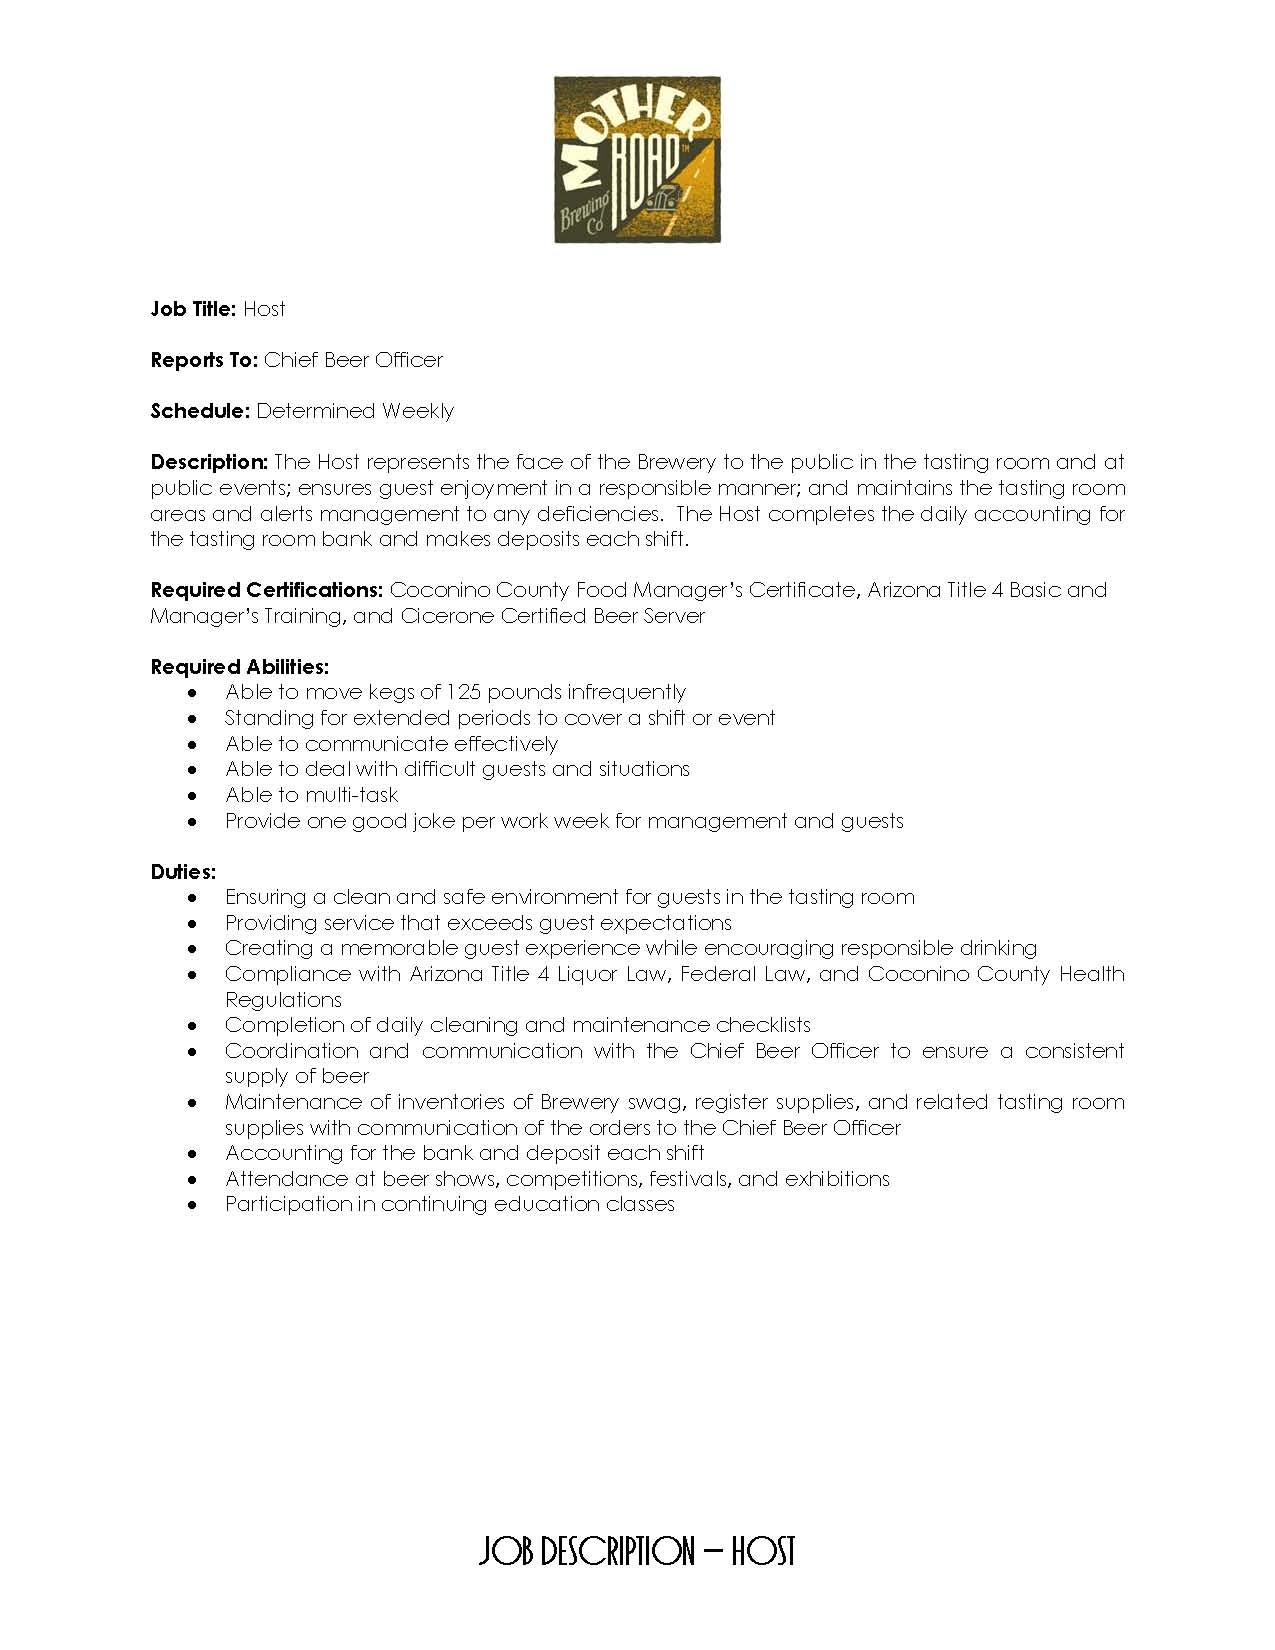 hostess job description Restaurant Hostess Resume Description – Hostess Job Description